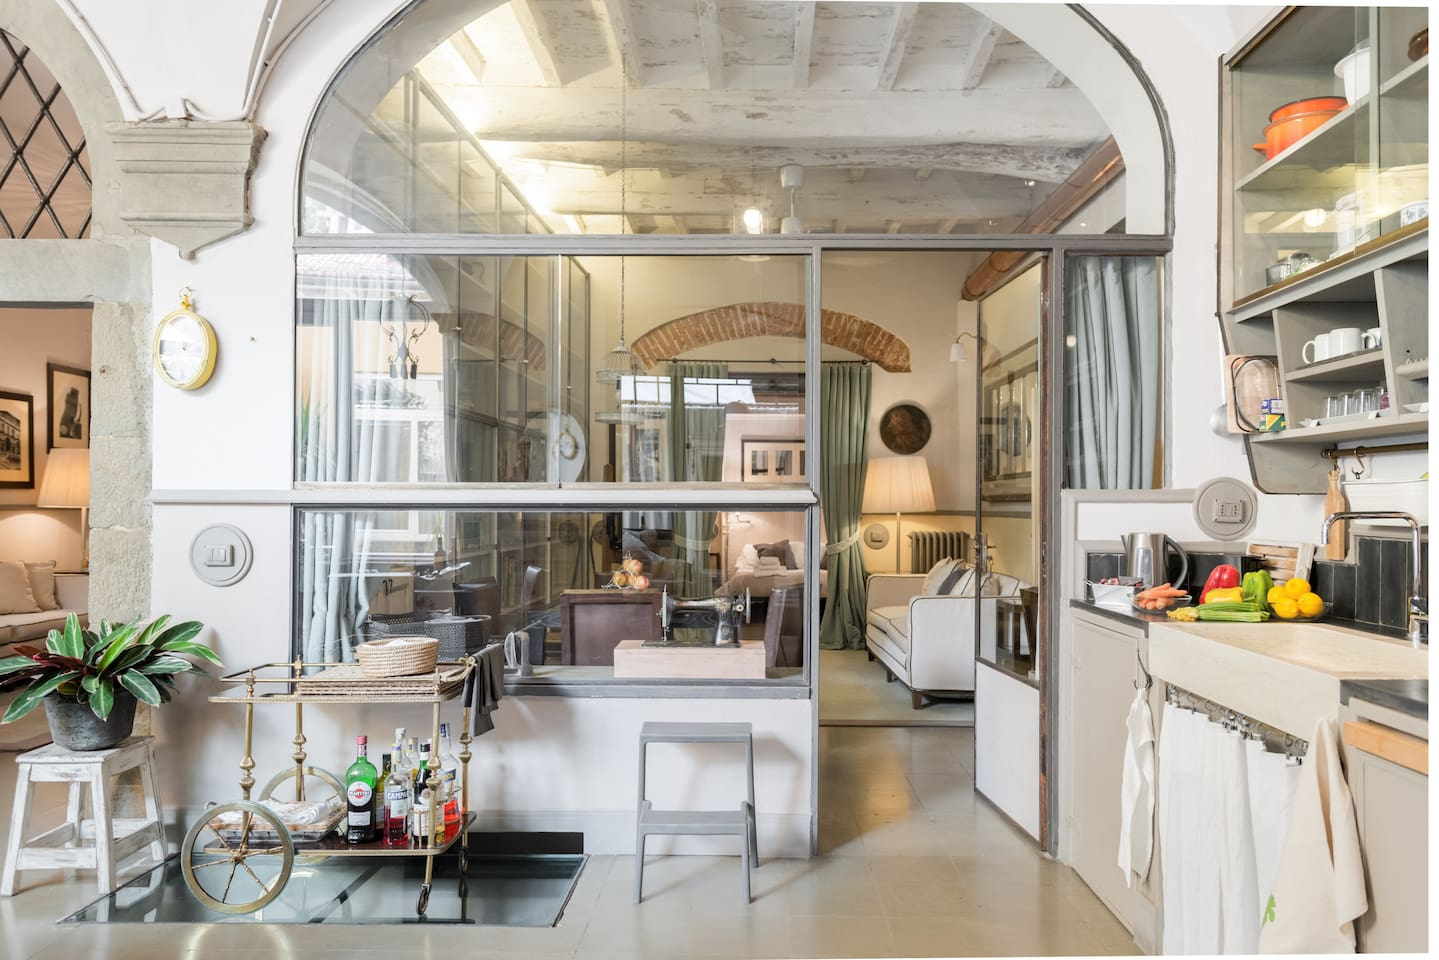 This luxurious industrial-themed Florence airbnb will take your breath away!